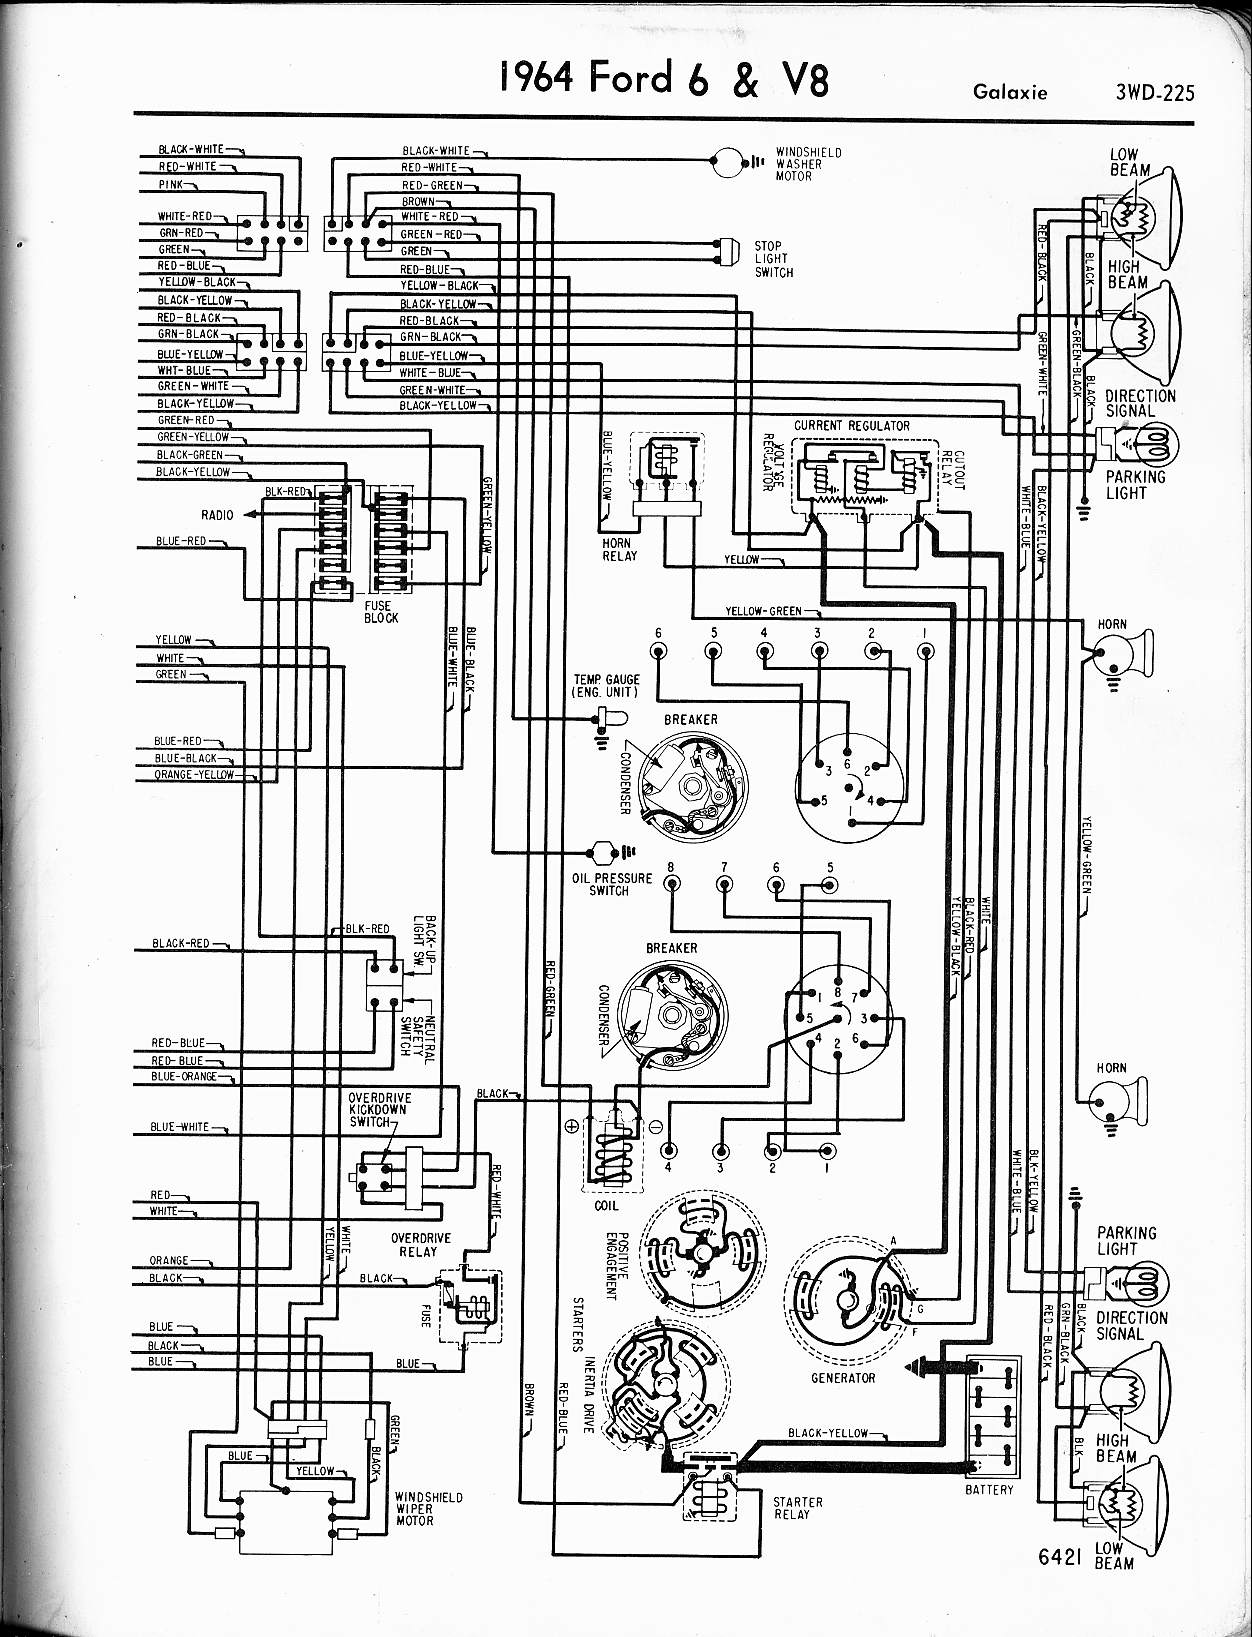 1964 Ford Thunderbird Fuel Wiring Diagram Libraries 57 65 Diagrams1964 6 U0026 V8 Galaxie Right